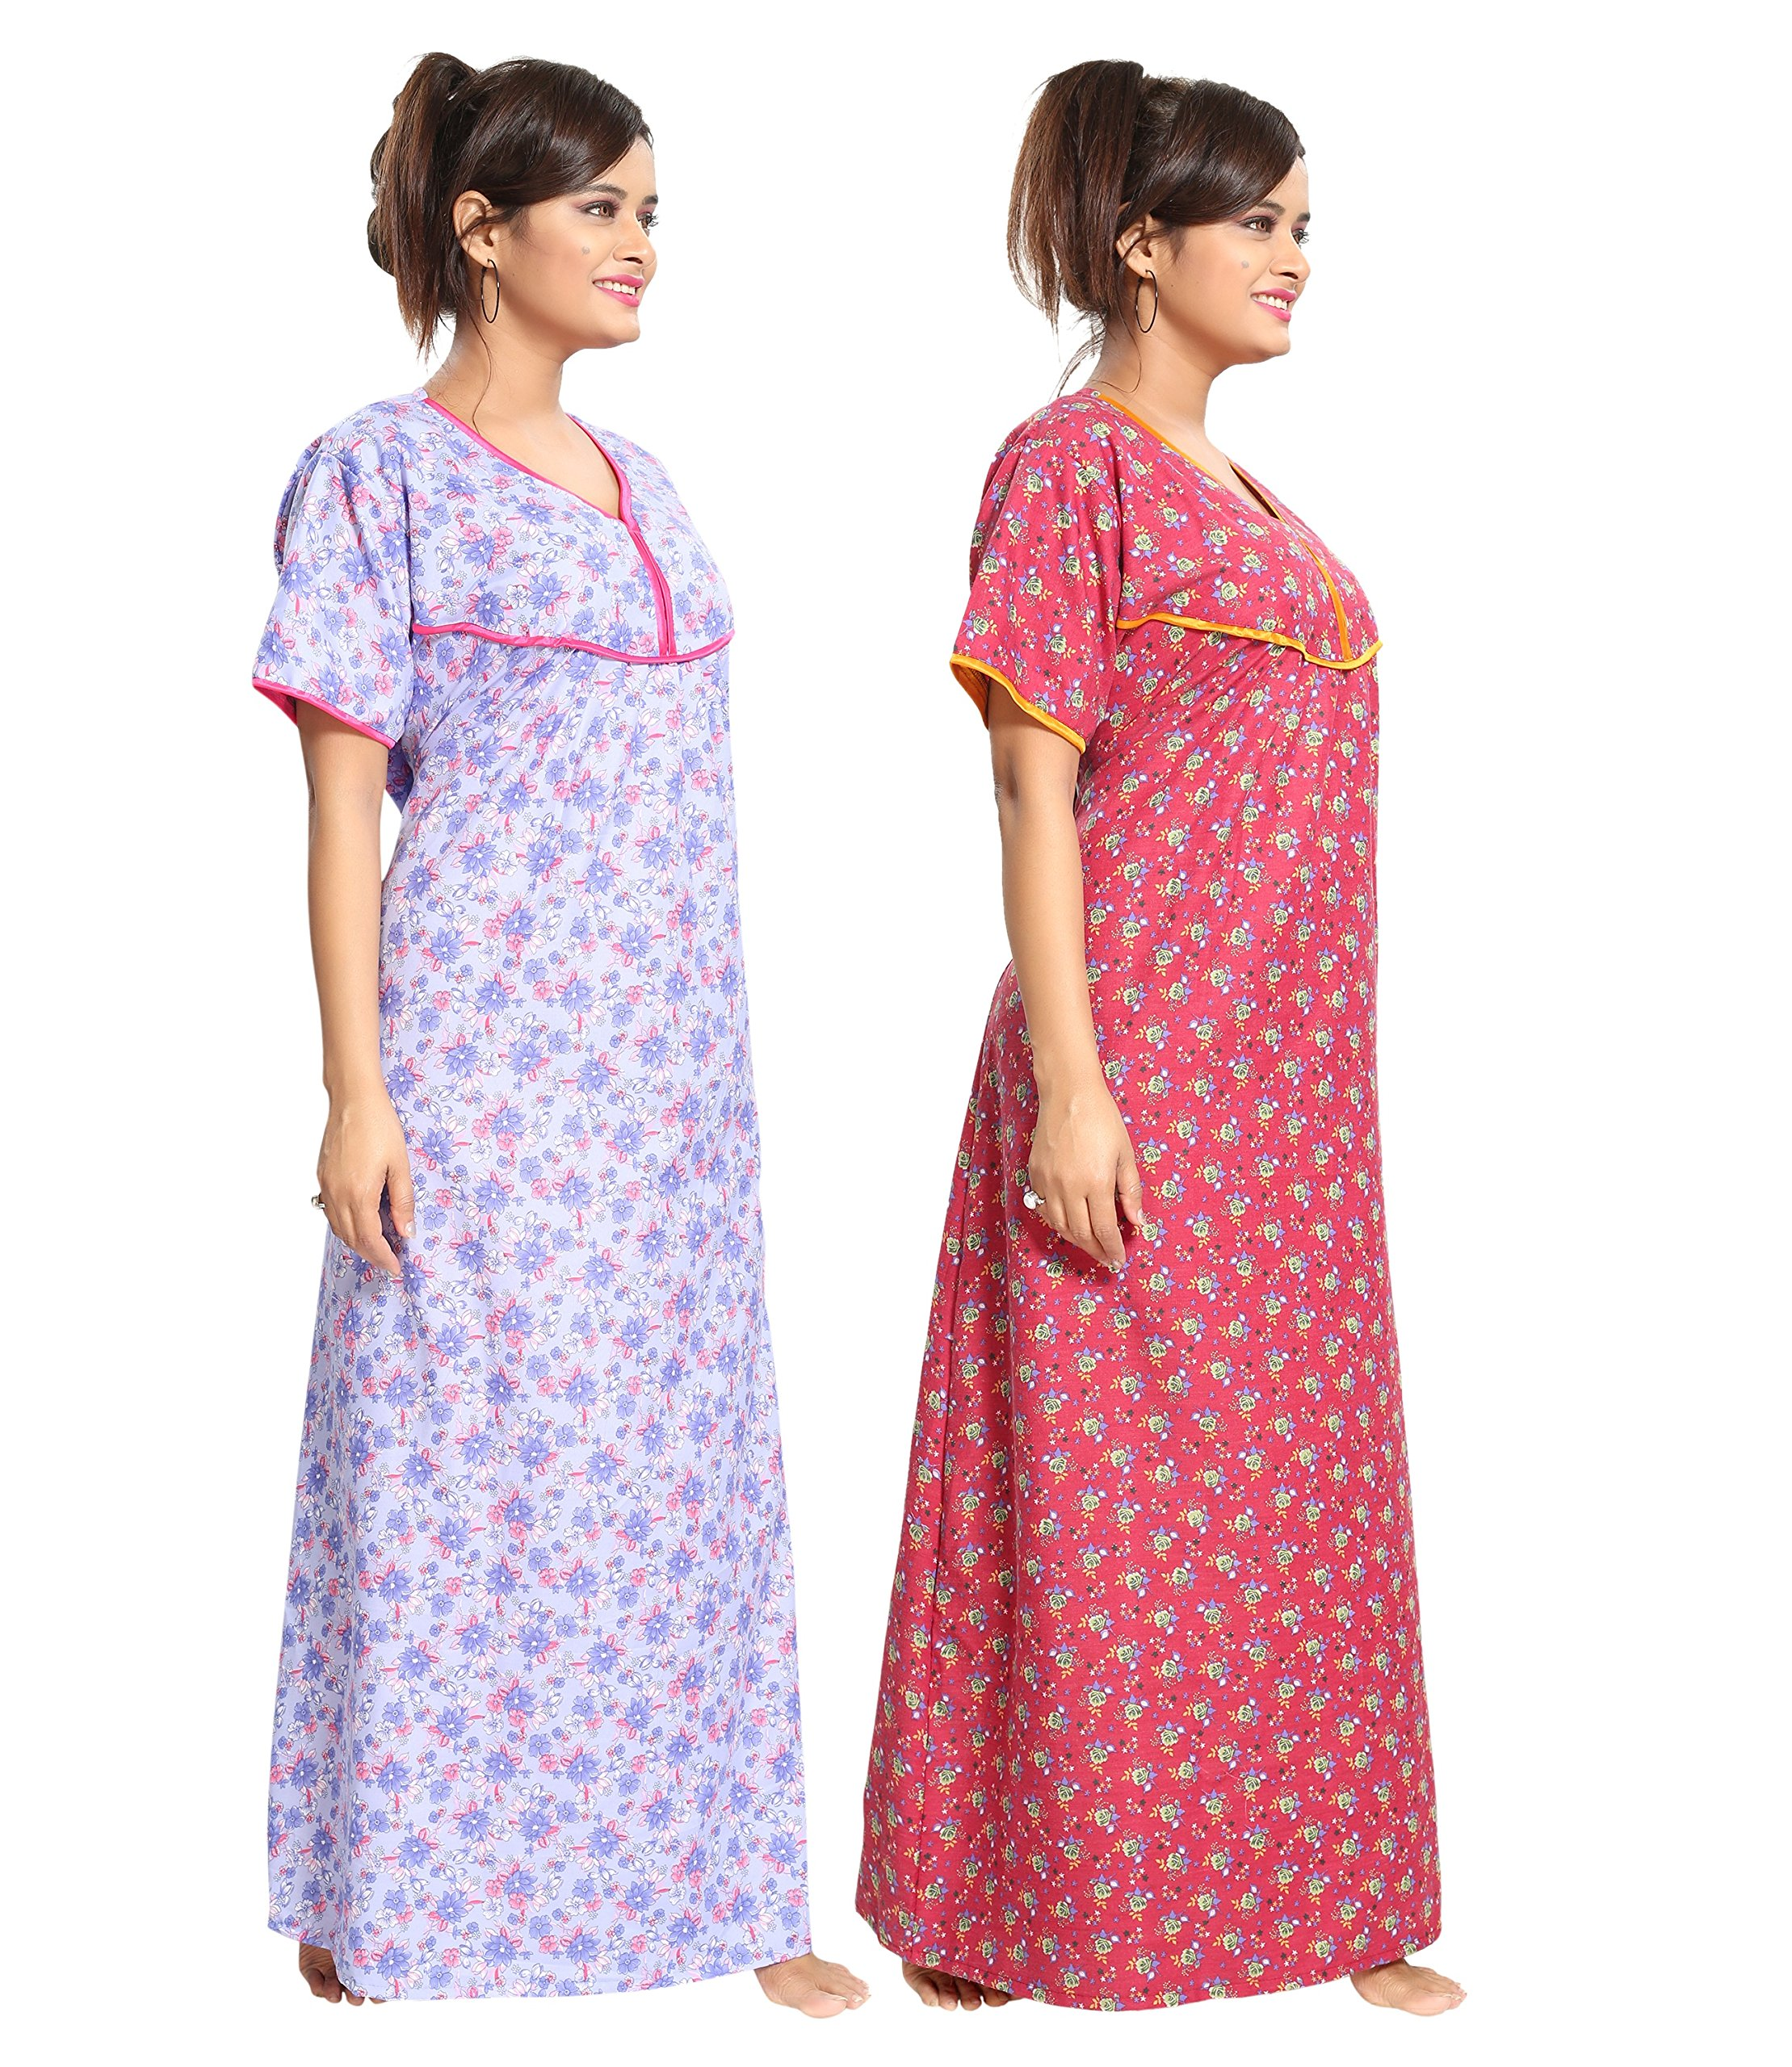 7b66c3e674 TUCUTE Women's Cotton Beautiful Floral Print Nighty/Night Gown/Night ...